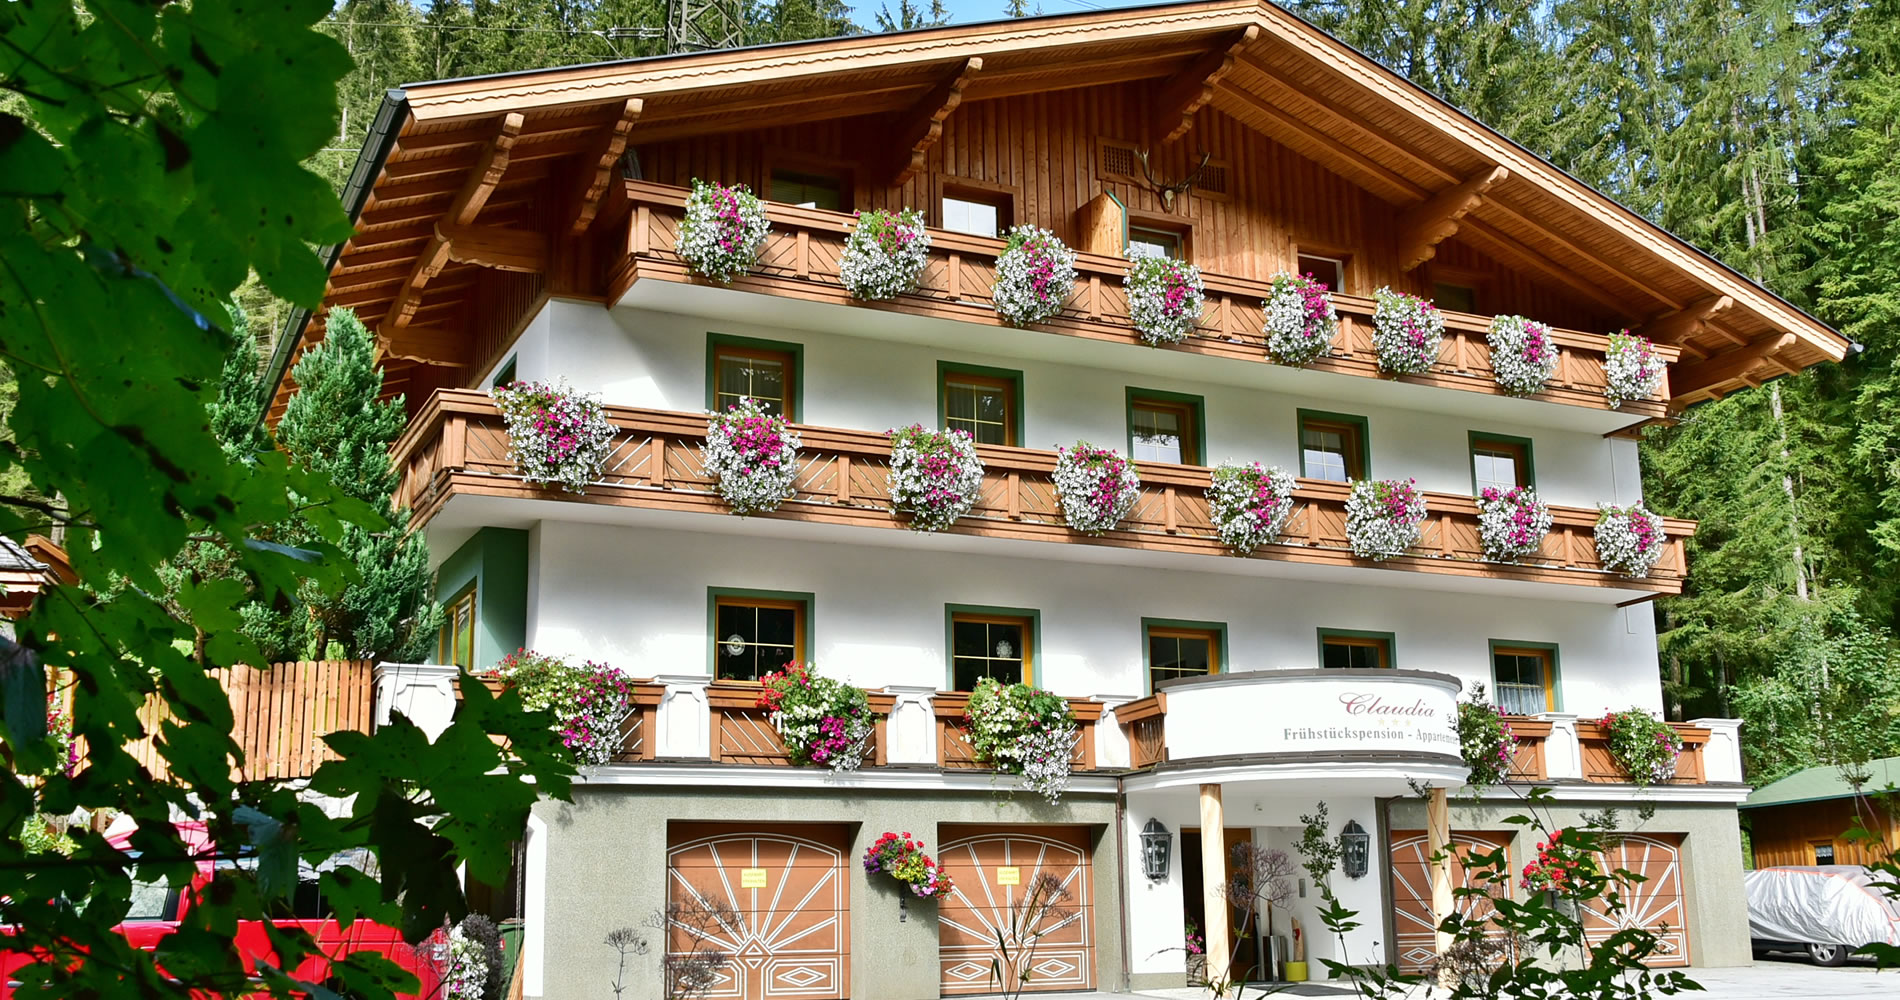 Pension Claudia, Sommerurlaub in Flachau